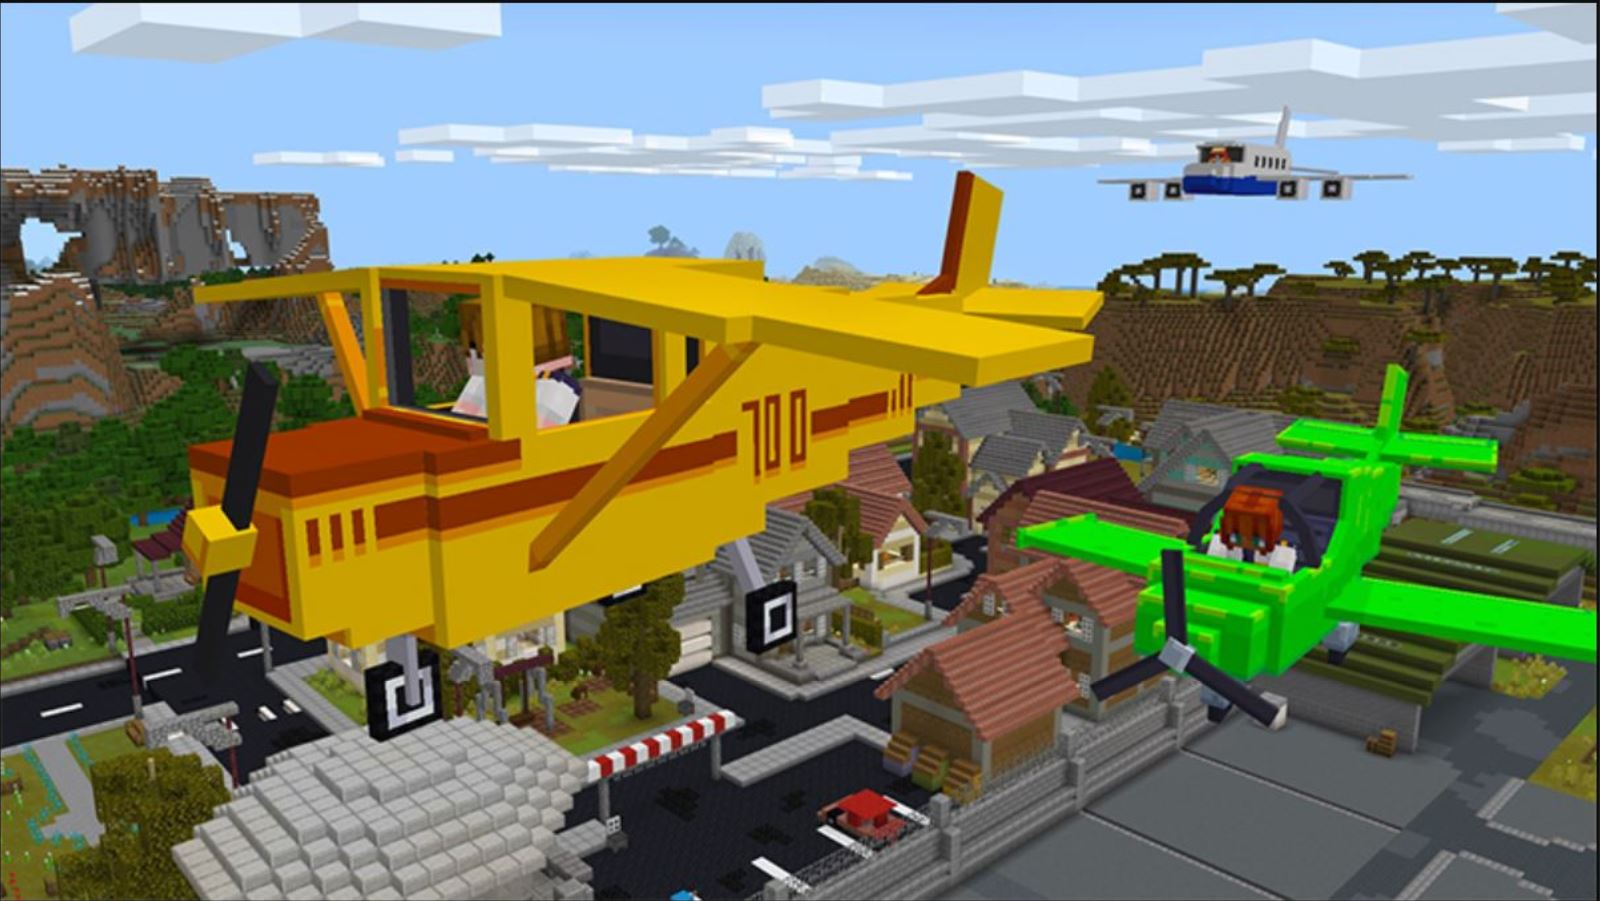 Want To Fly An Airplane In Minecraft? Then The Super Planes Marketplace Item Is The Choice For You